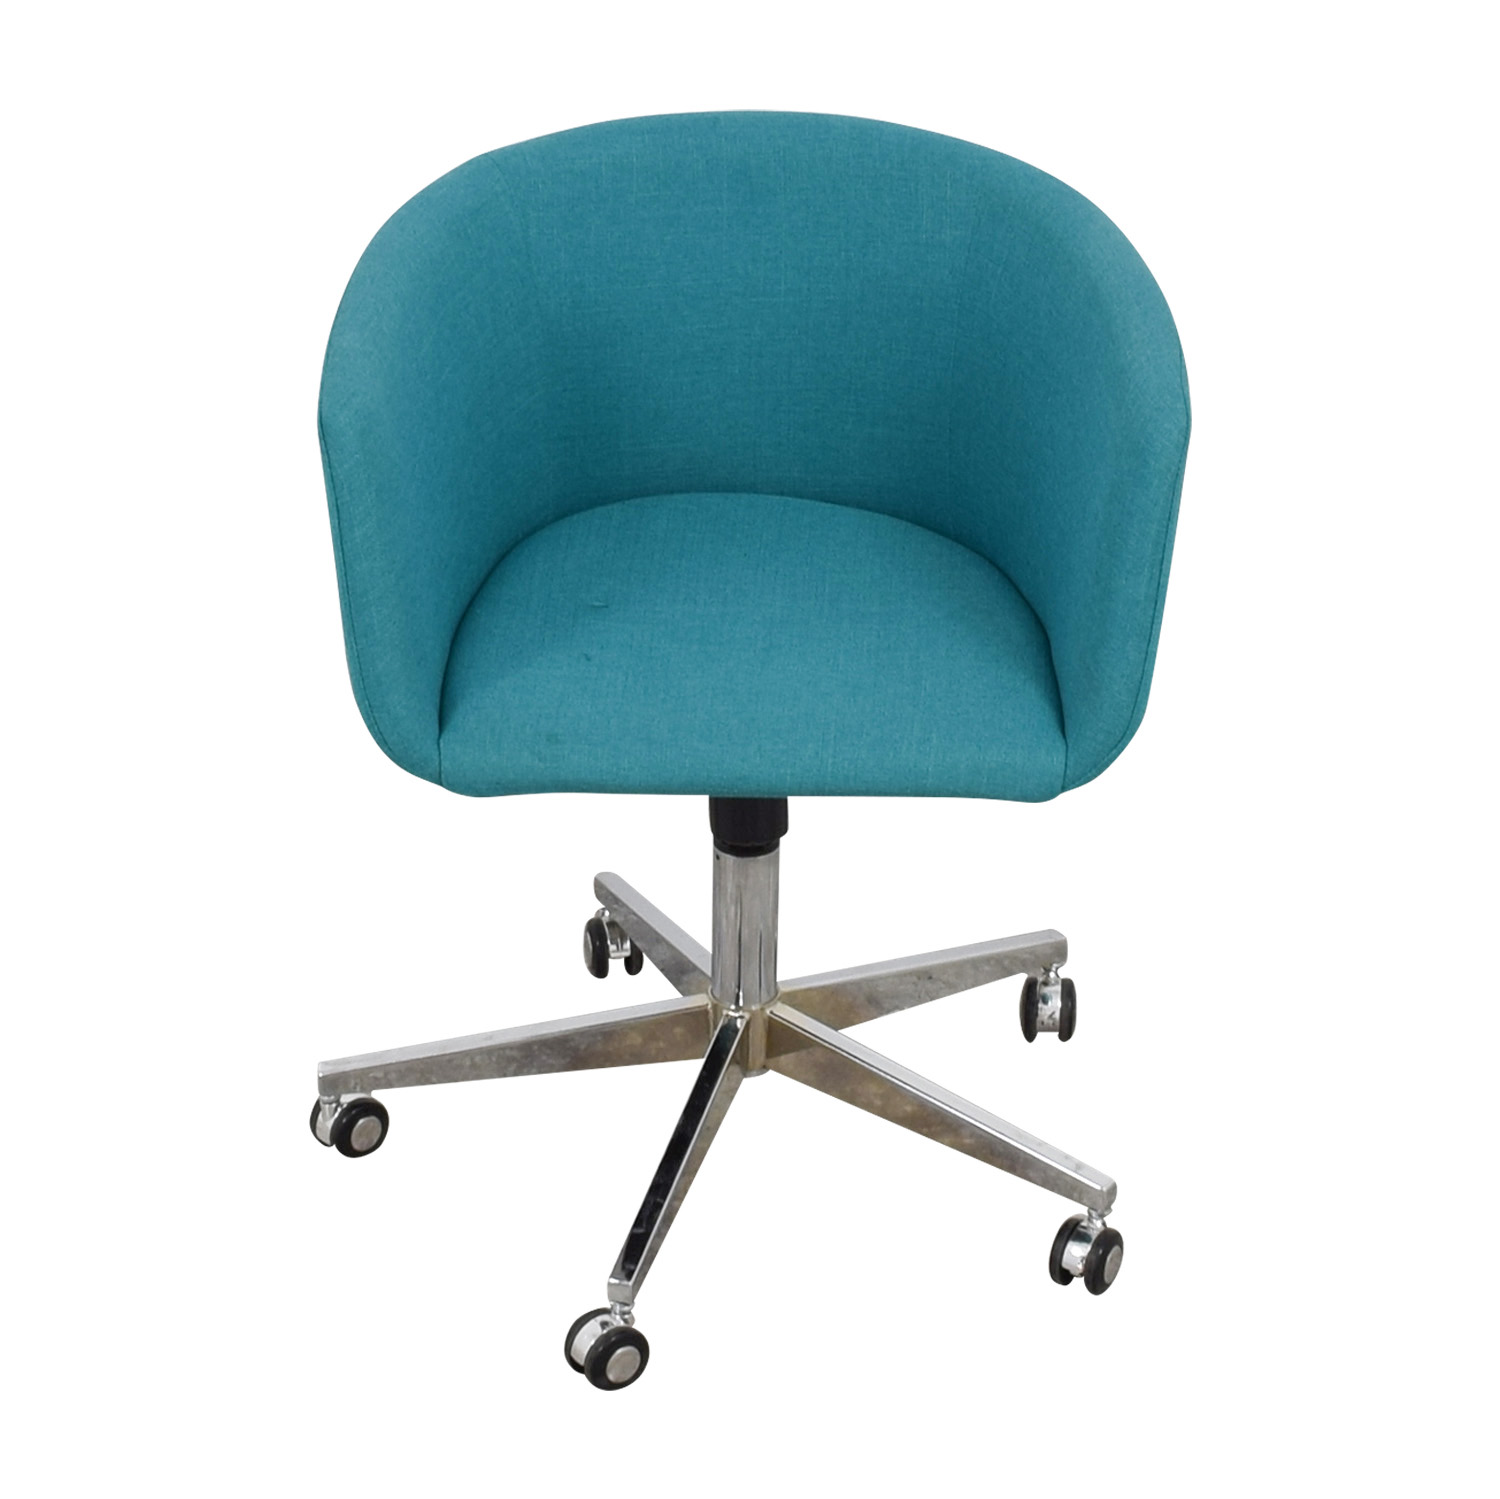 desk chair teal tables and chairs wholesale in los angeles 37 off cb2 with castors